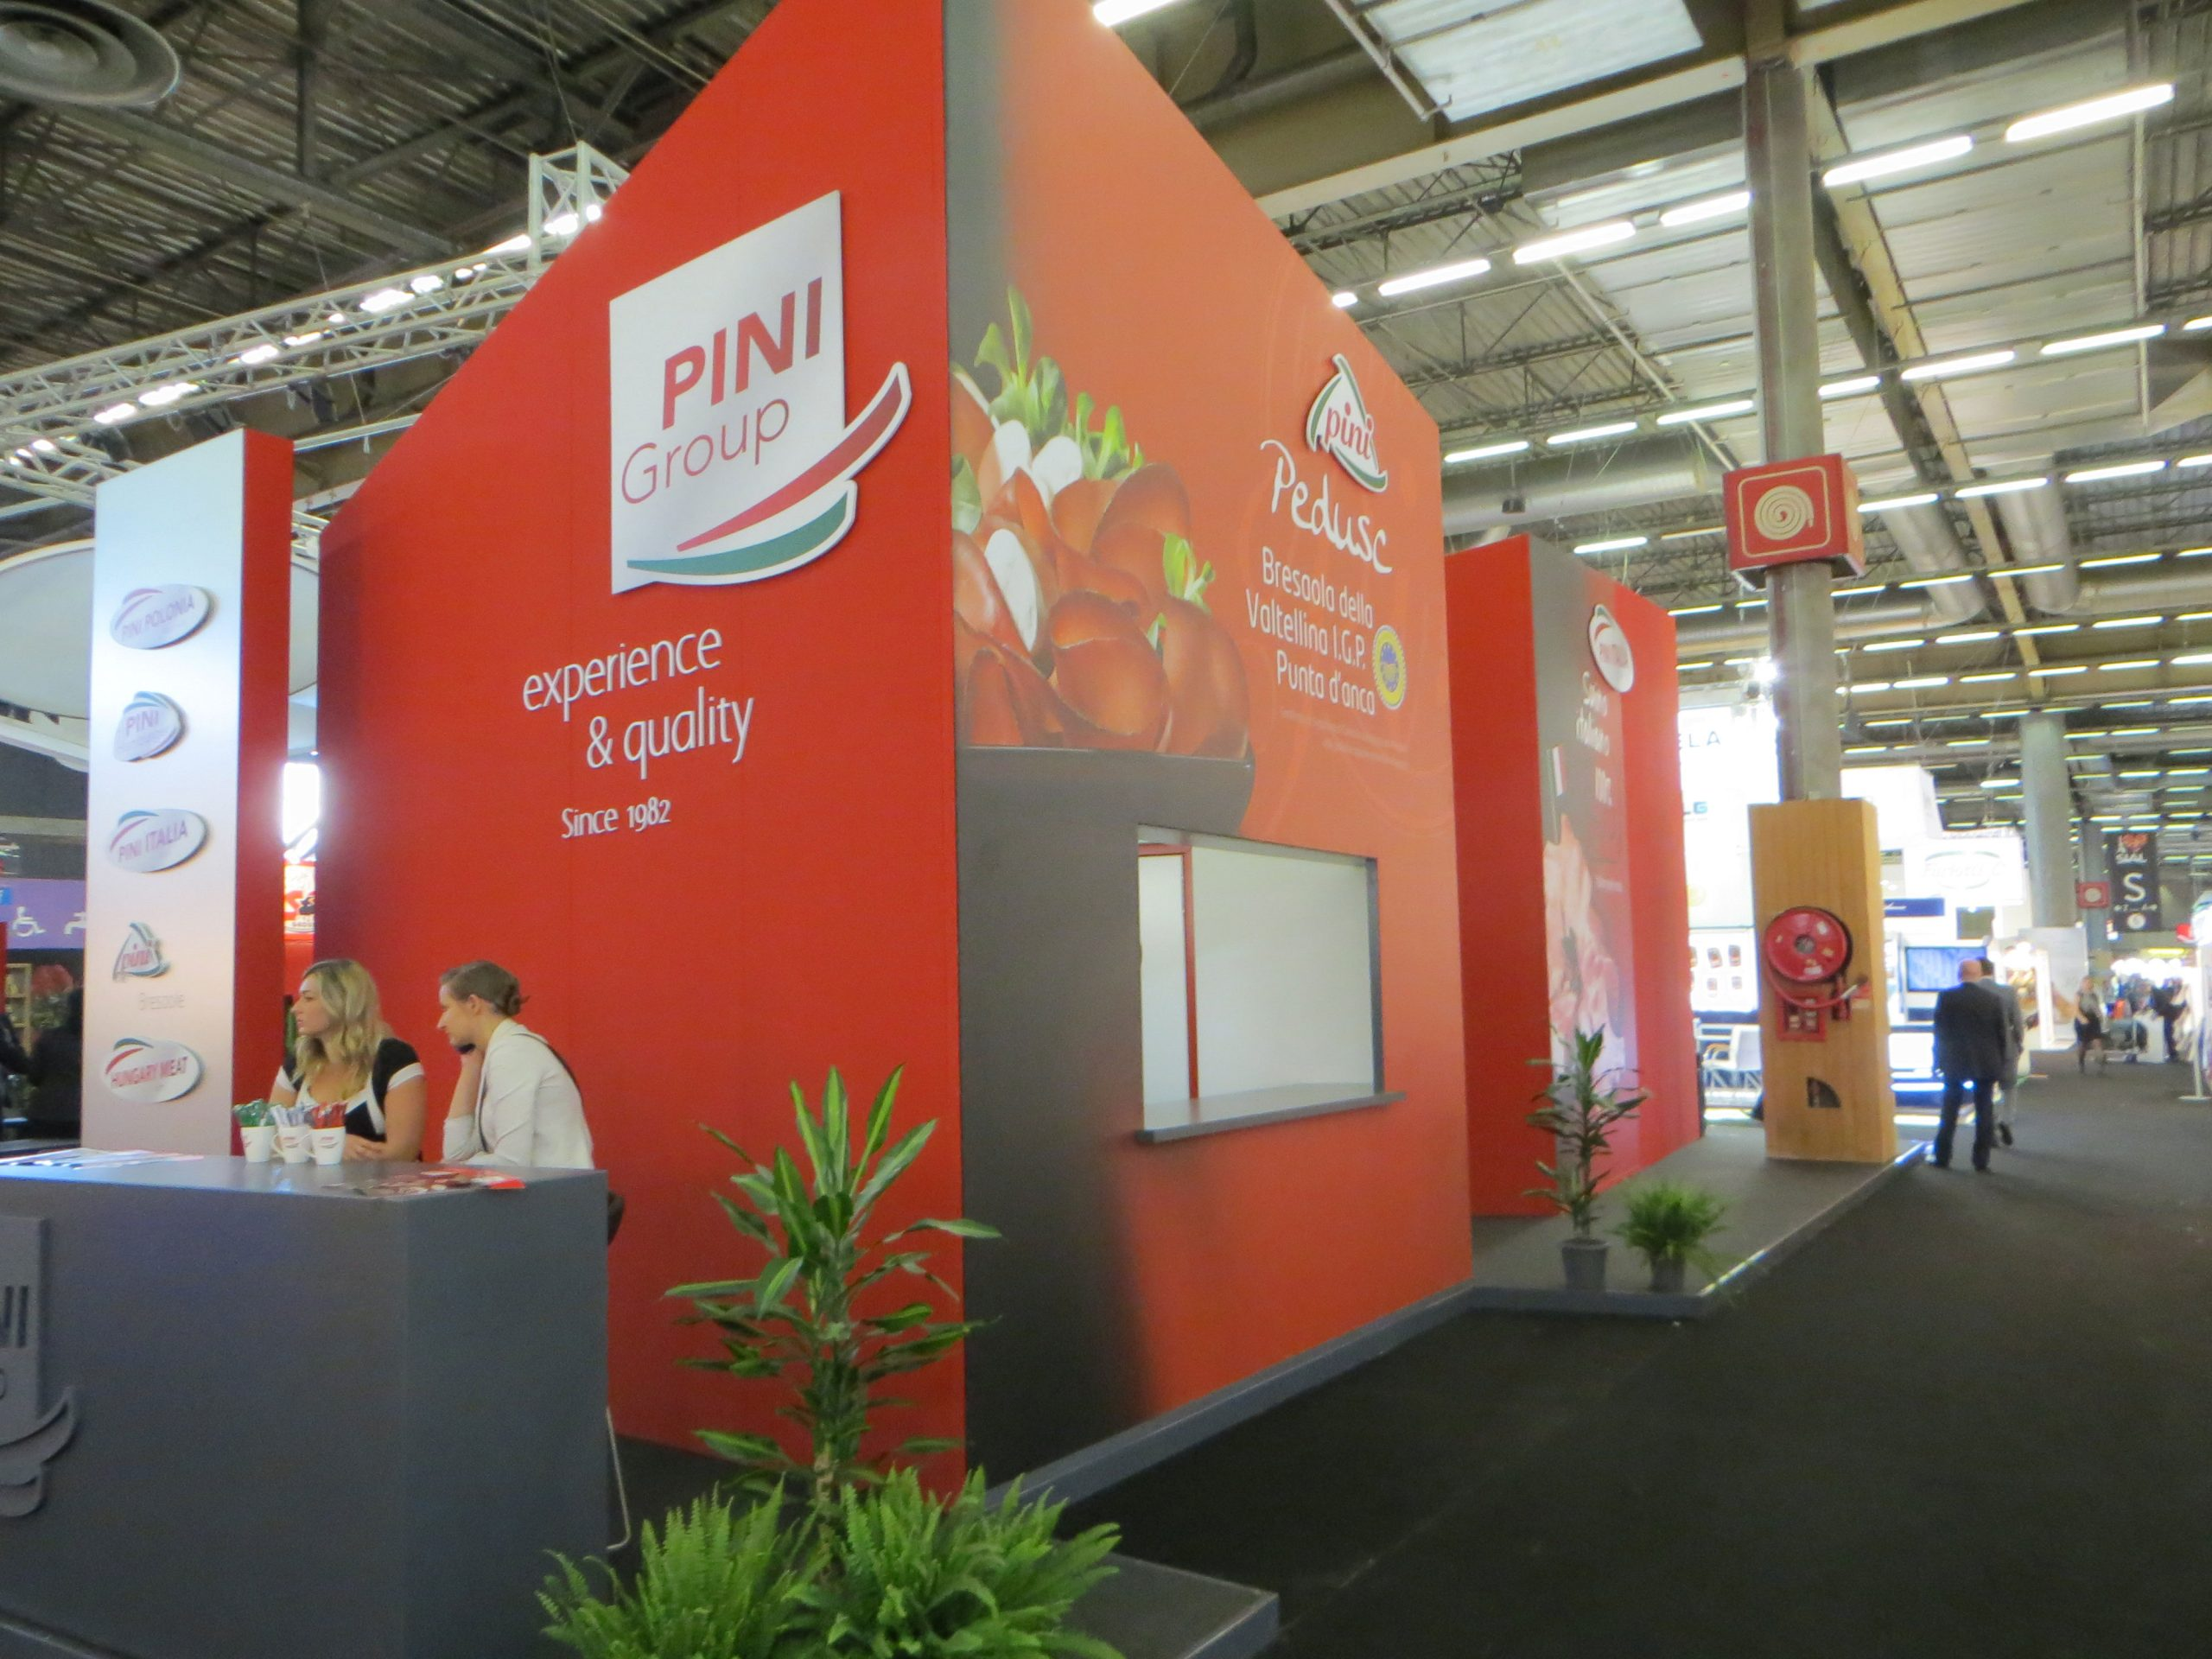 4-Pini-Group-Koln